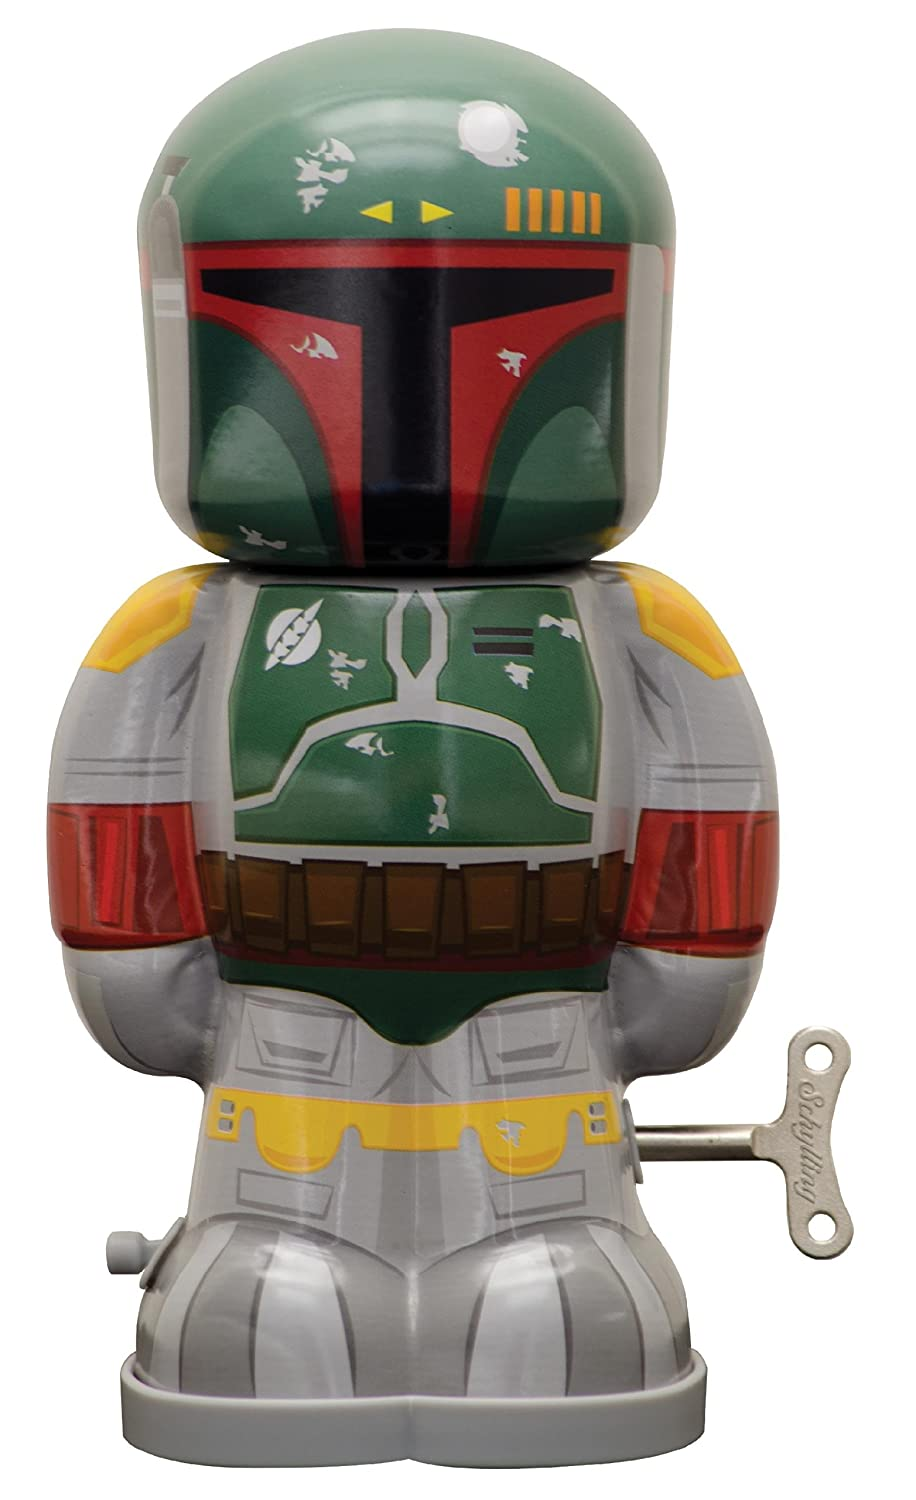 Schylling L'Sc-swwub Star Wars Boba Fett Wind Up Figure TOBAR